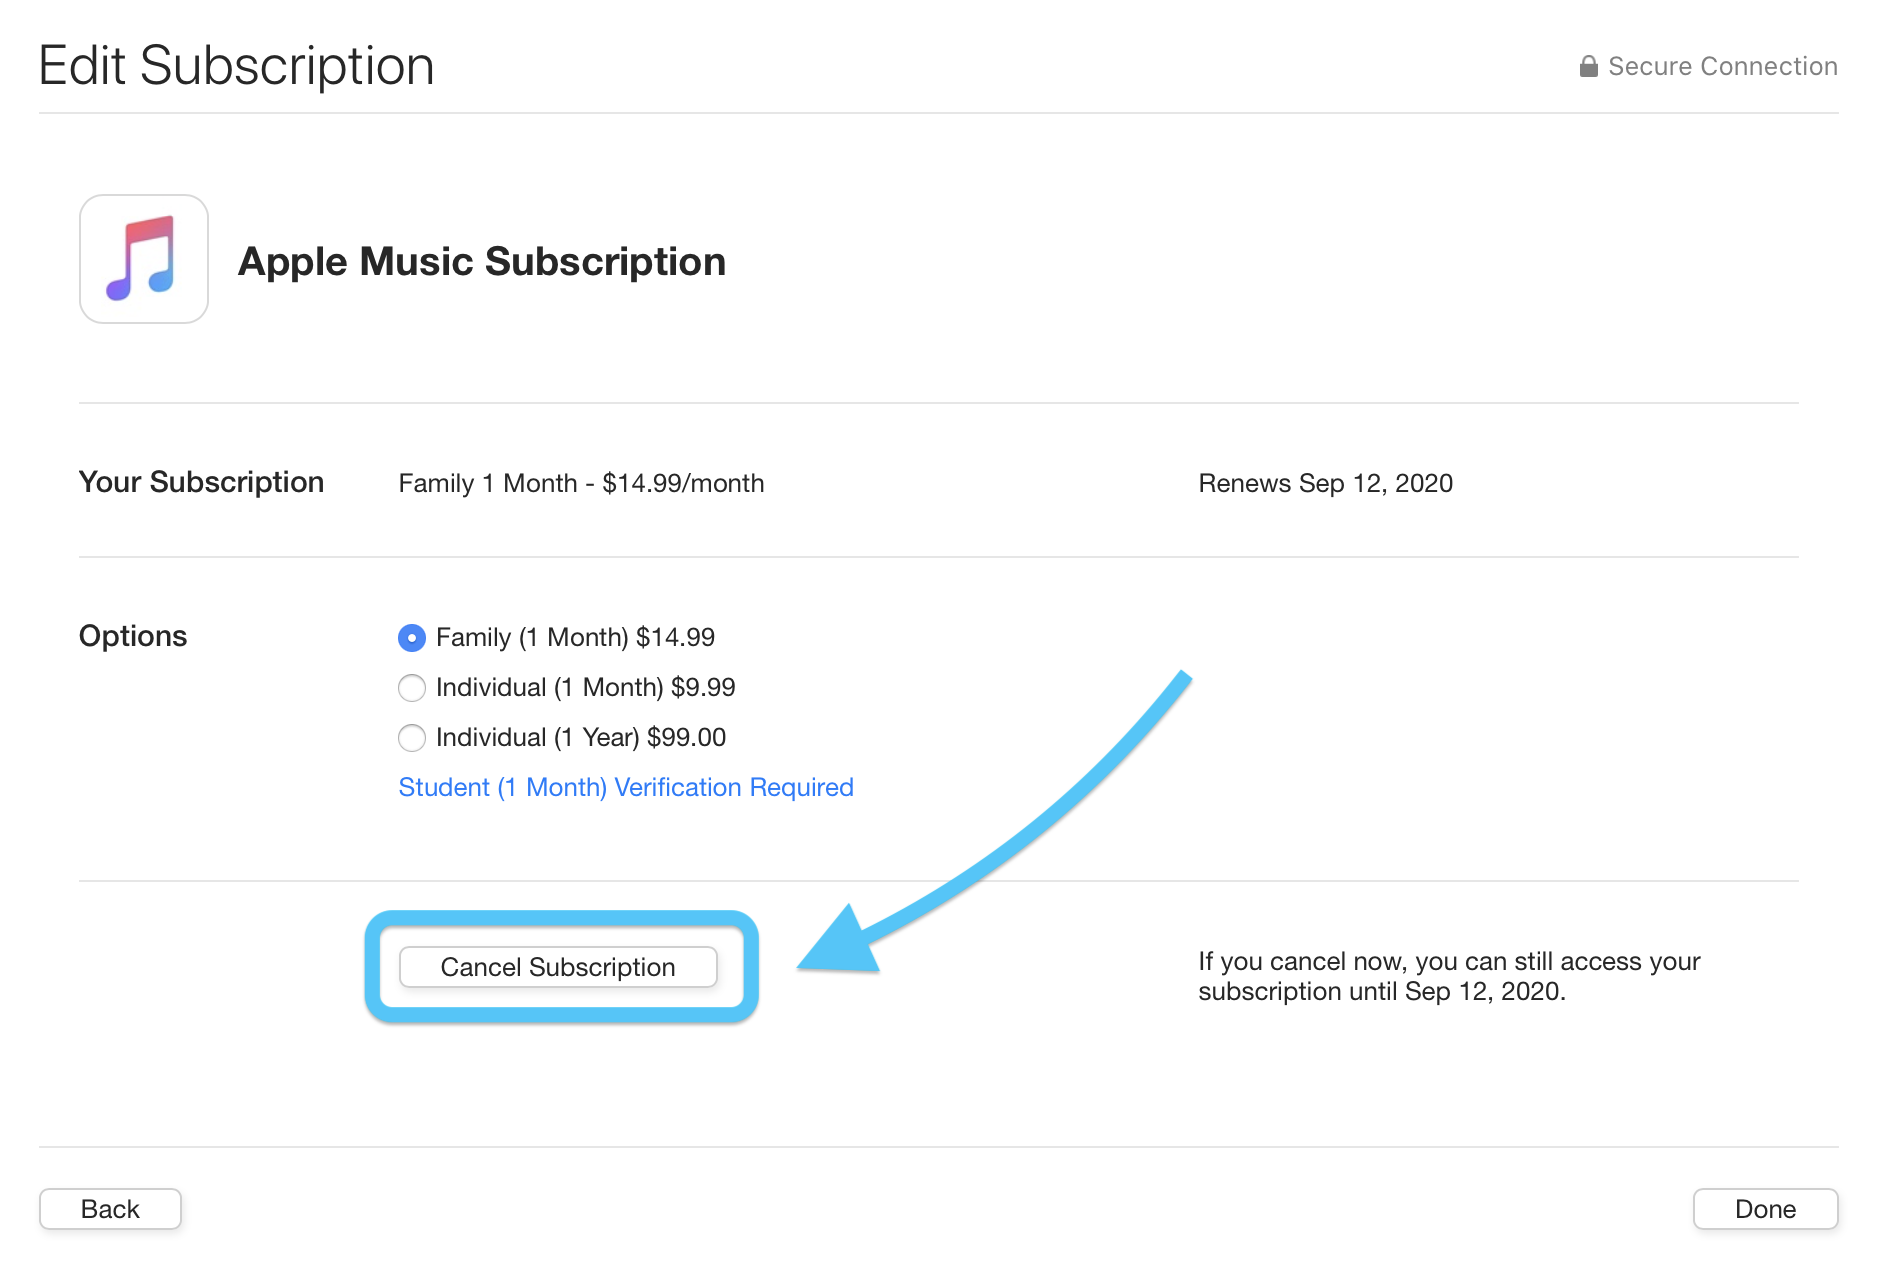 How to cancel Apple Music subscription - 9to5Mac